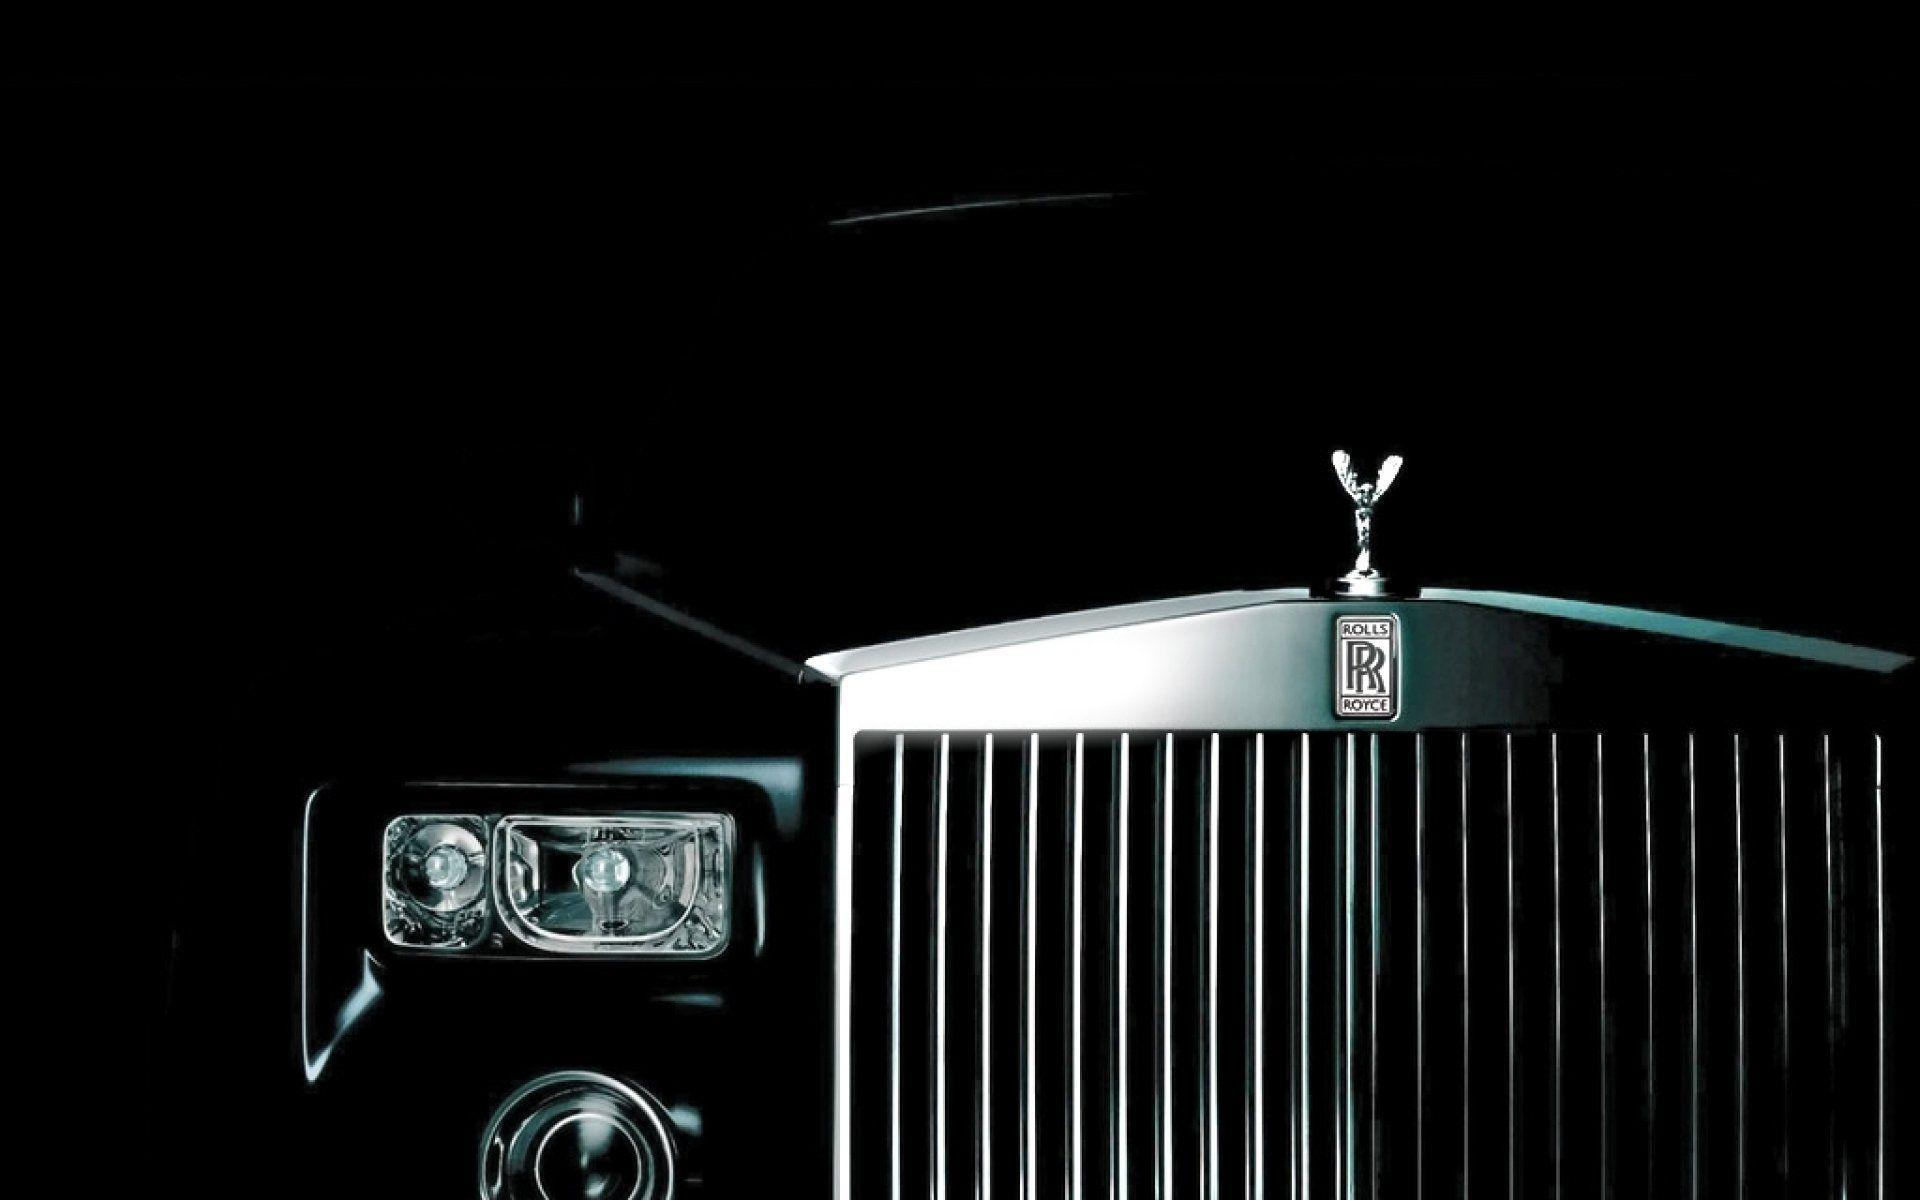 41 Rolls-Royce Phantom HD Wallpapers | Background Images - Wallpaper ...